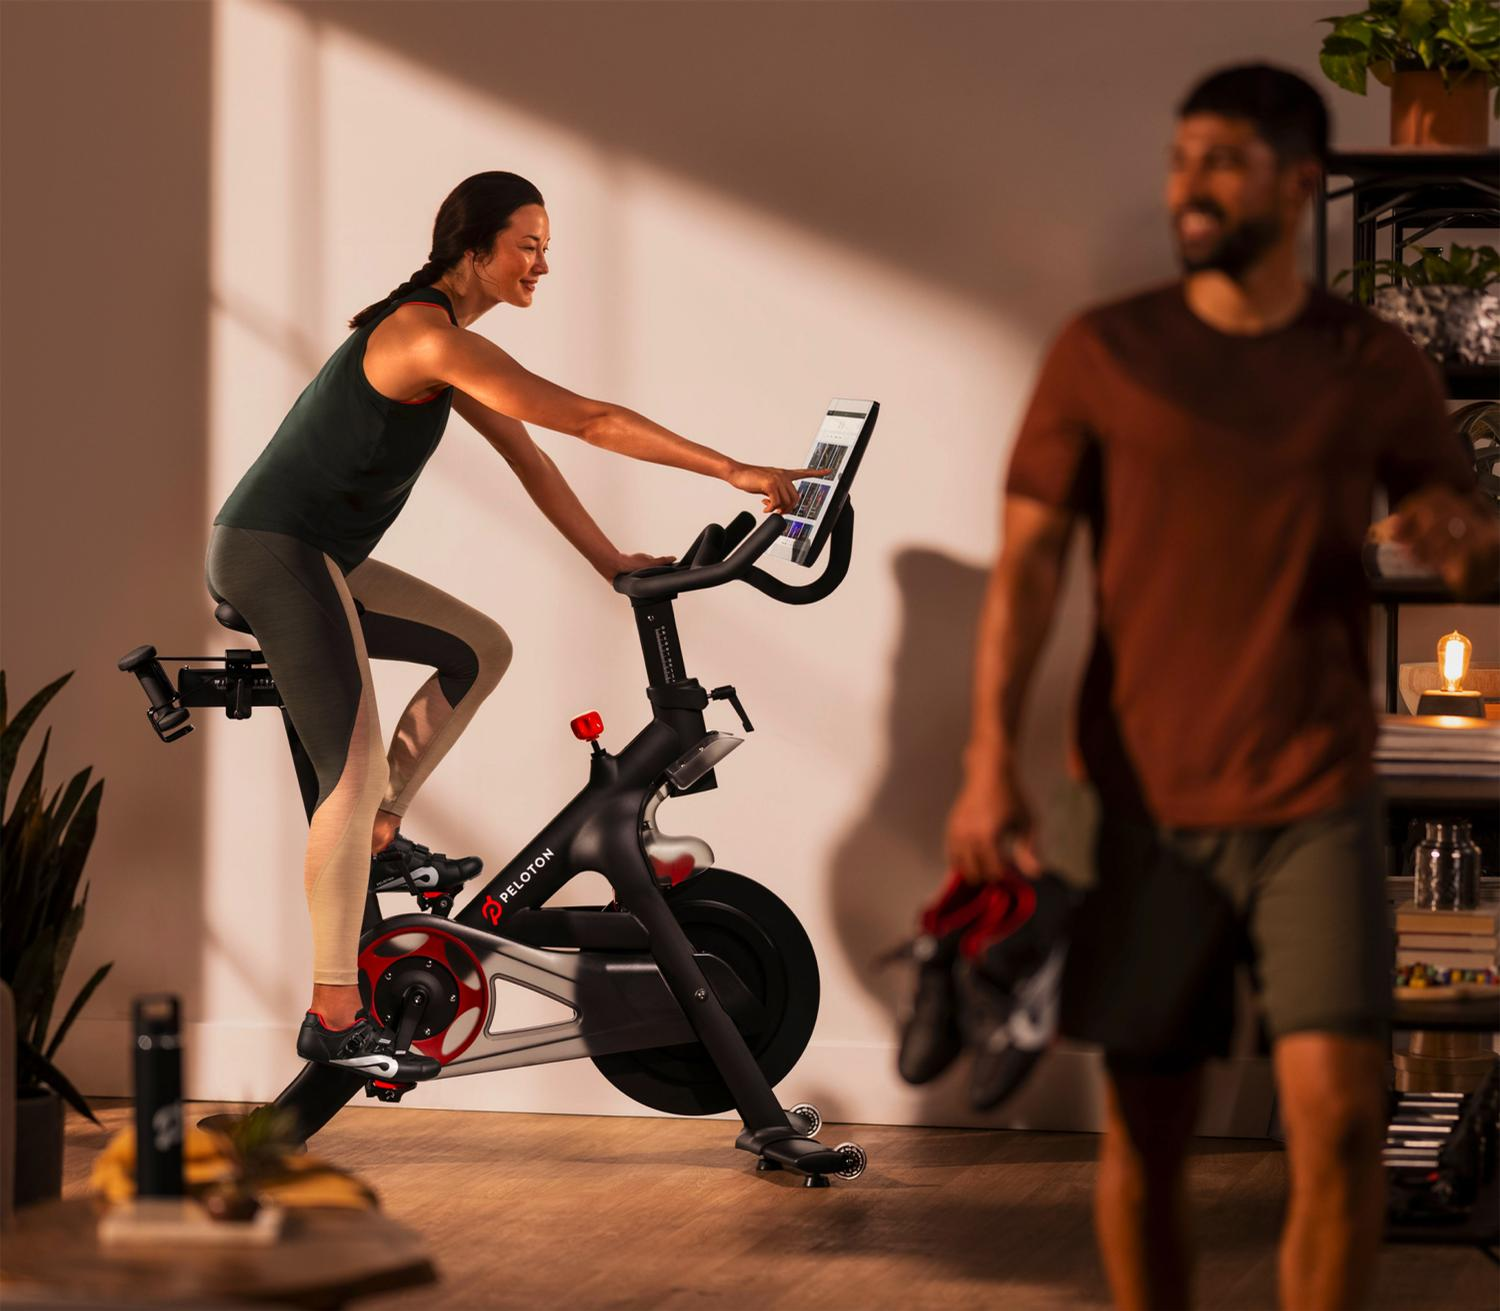 Peloton said it is lowering the price of its original Peloton Bike across all of its markets to US$1,495 / Peloton